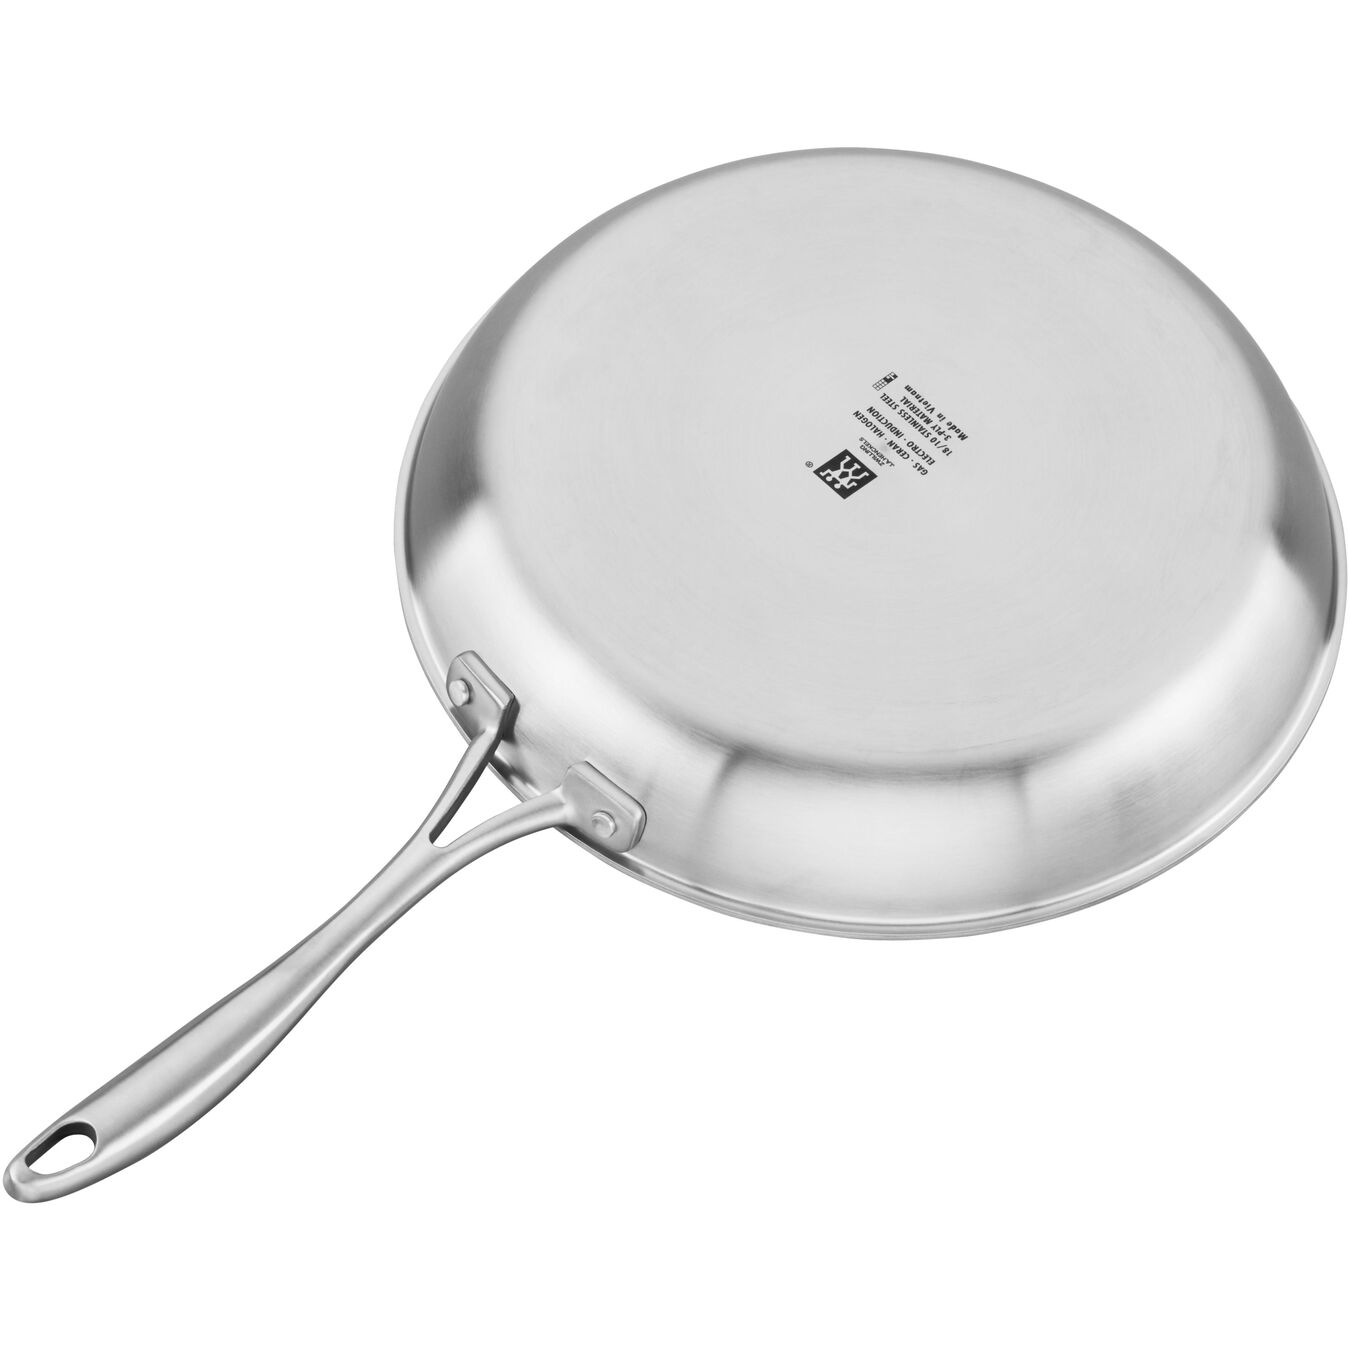 3 Ply, 12-inch, 18/10 Stainless Steel, Ceramic, Frying pan,,large 3